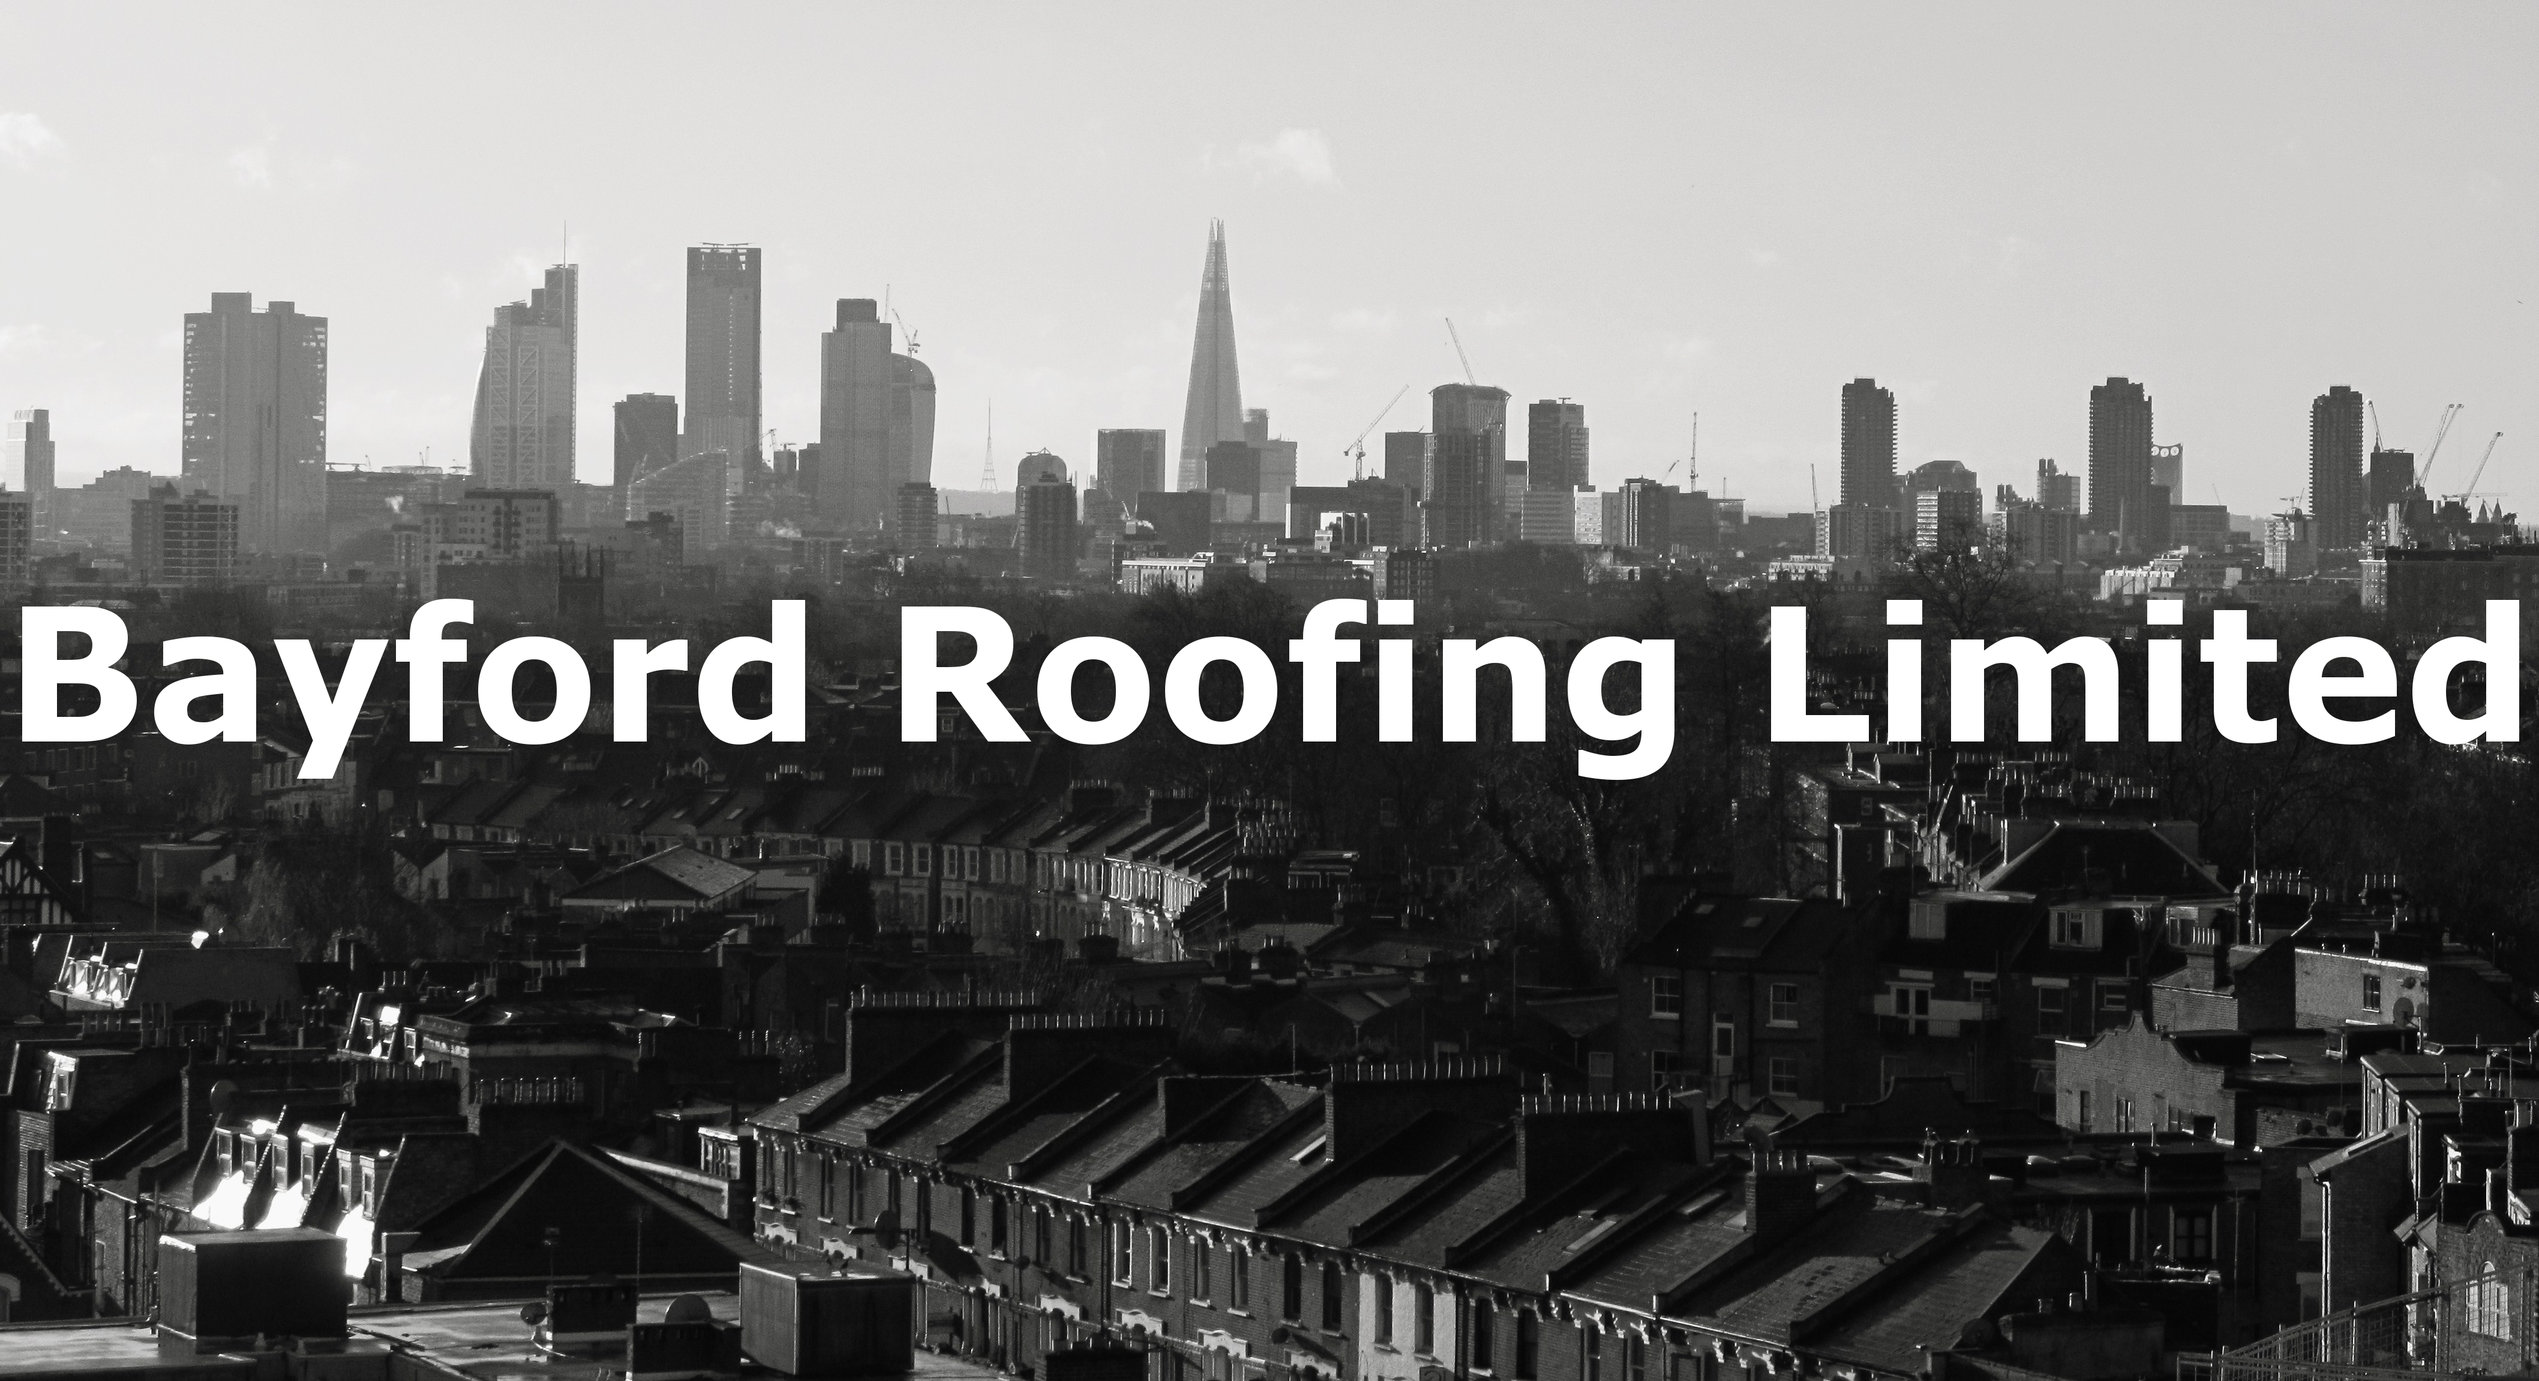 Bayford Roofing